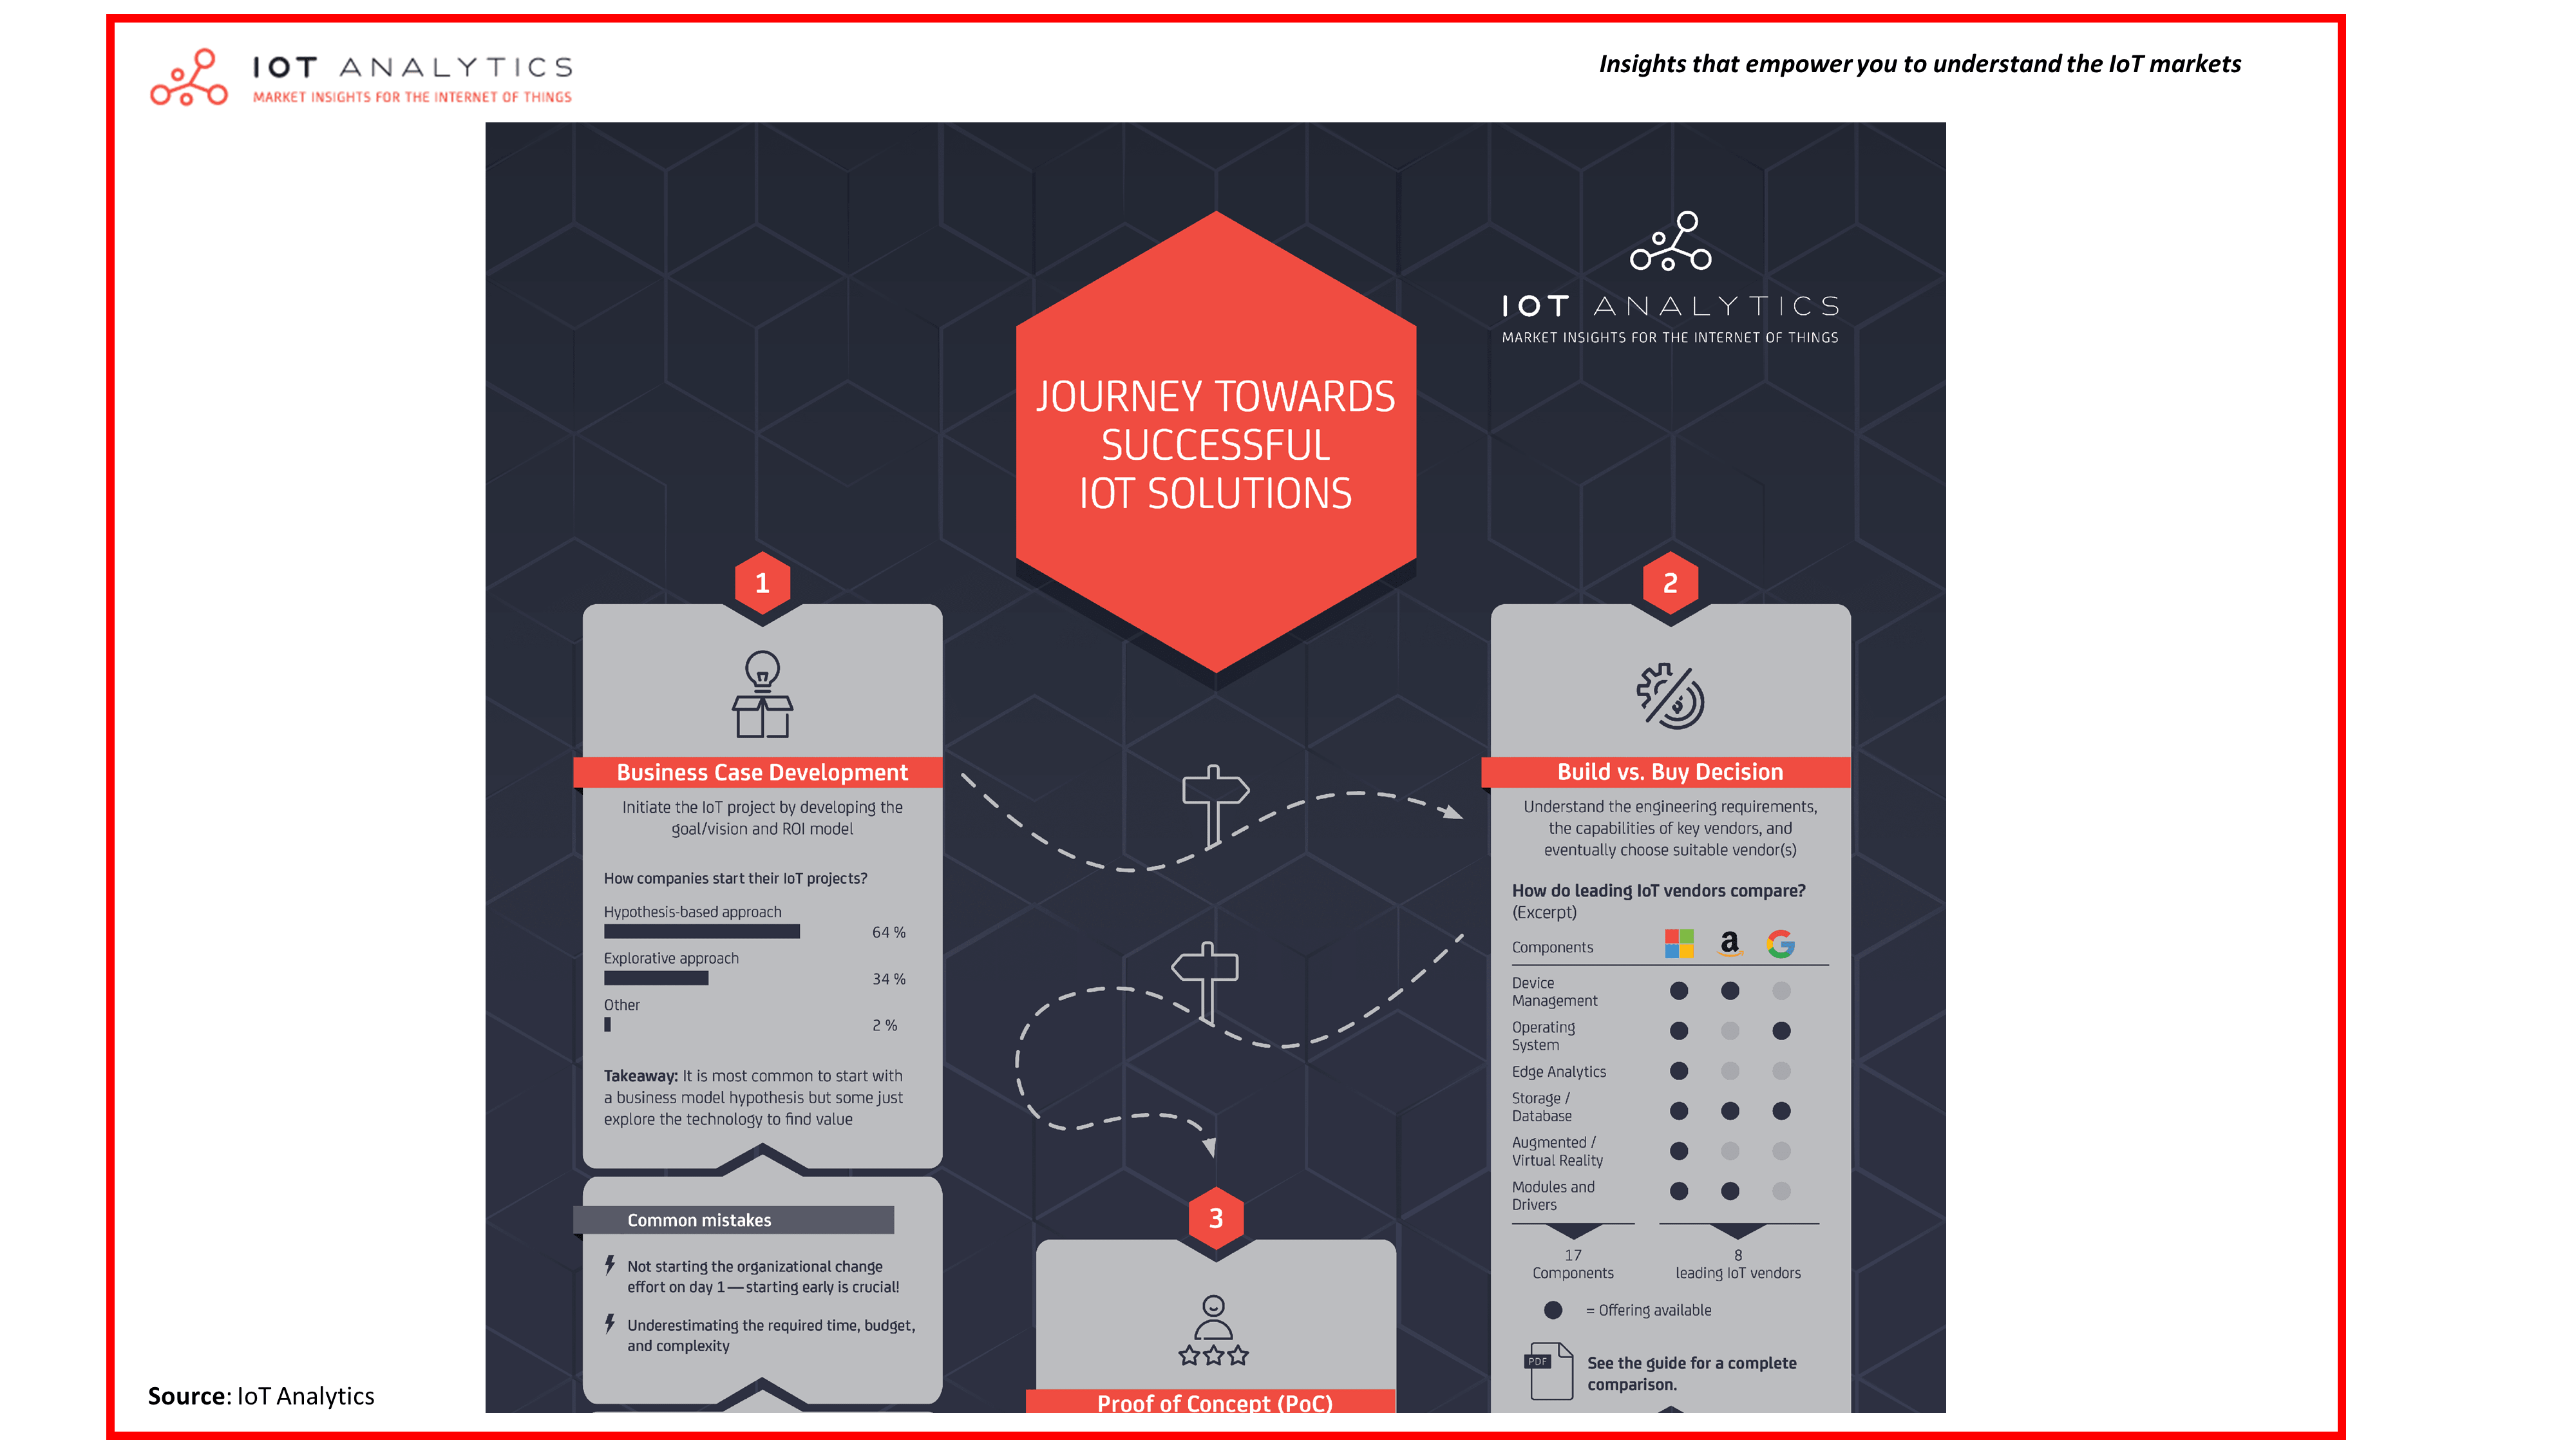 Journey towards successful IoT solution infographic